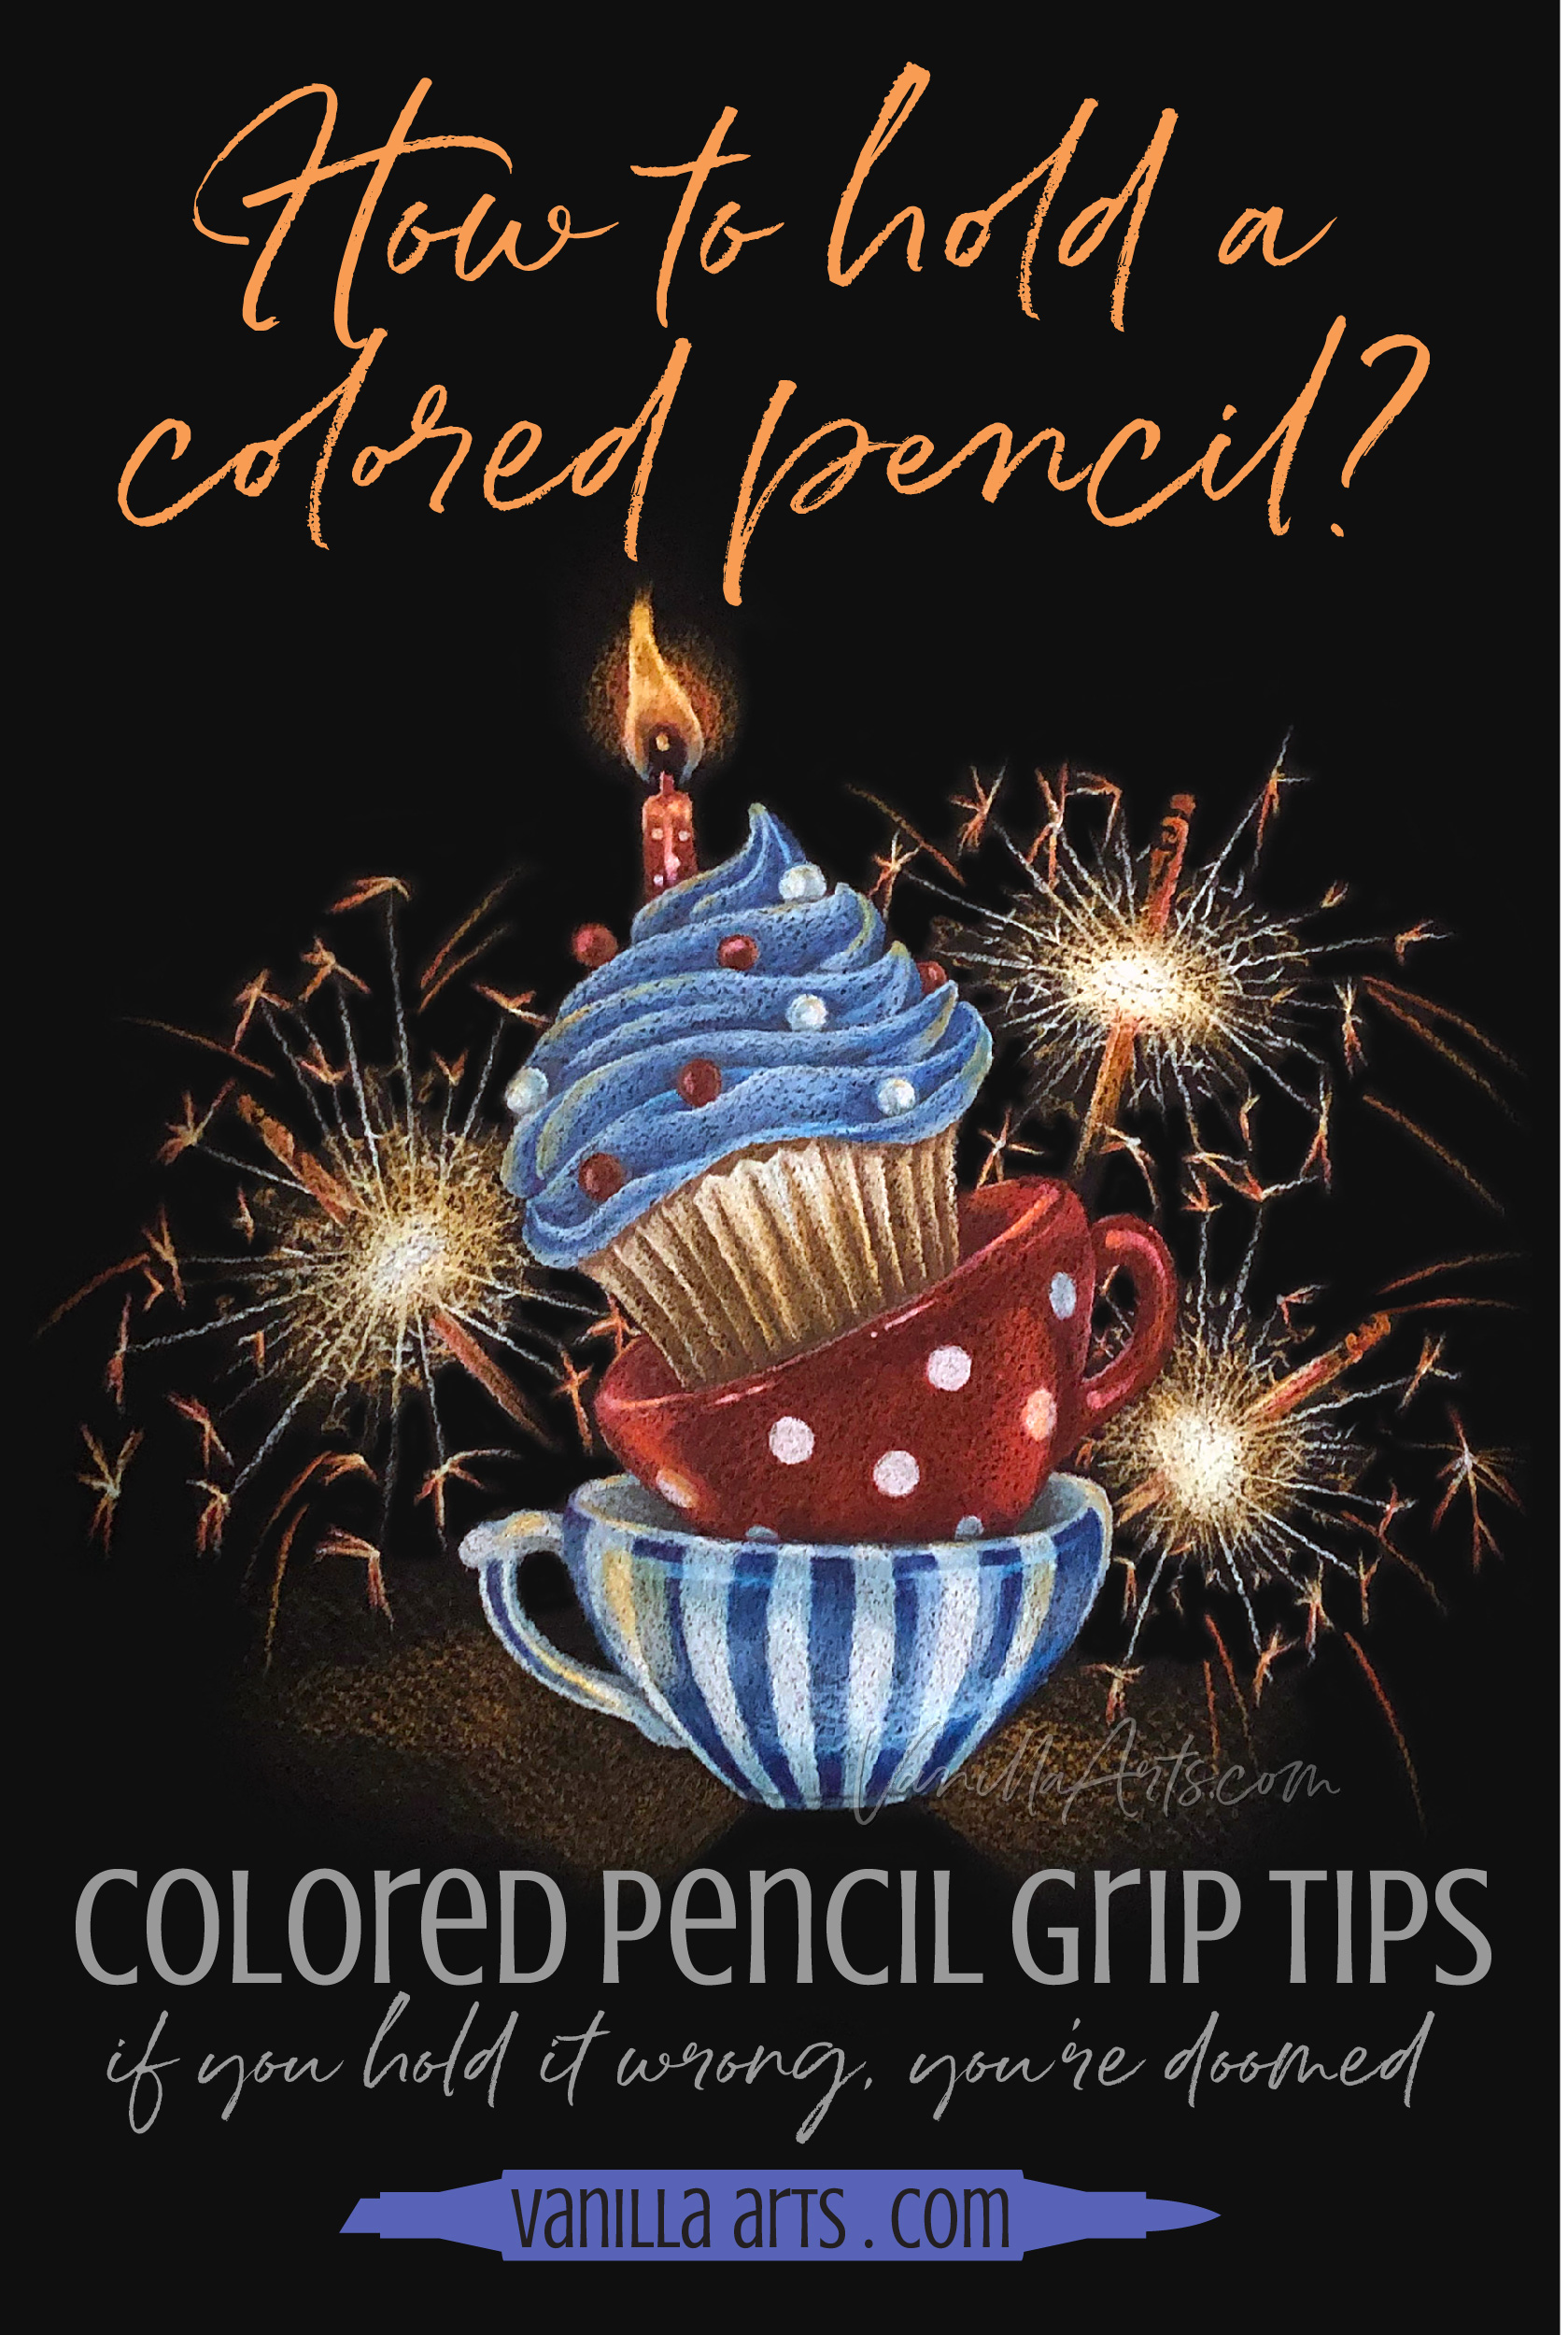 Six tips to improve your colored pencil projects. Adjusting your grip makes a gigantic difference in your line quality and paper coverage. The correct hold makes you a better artist. | VanillaArts.com | #coloredpencil #realisticcoloring #howtocolor